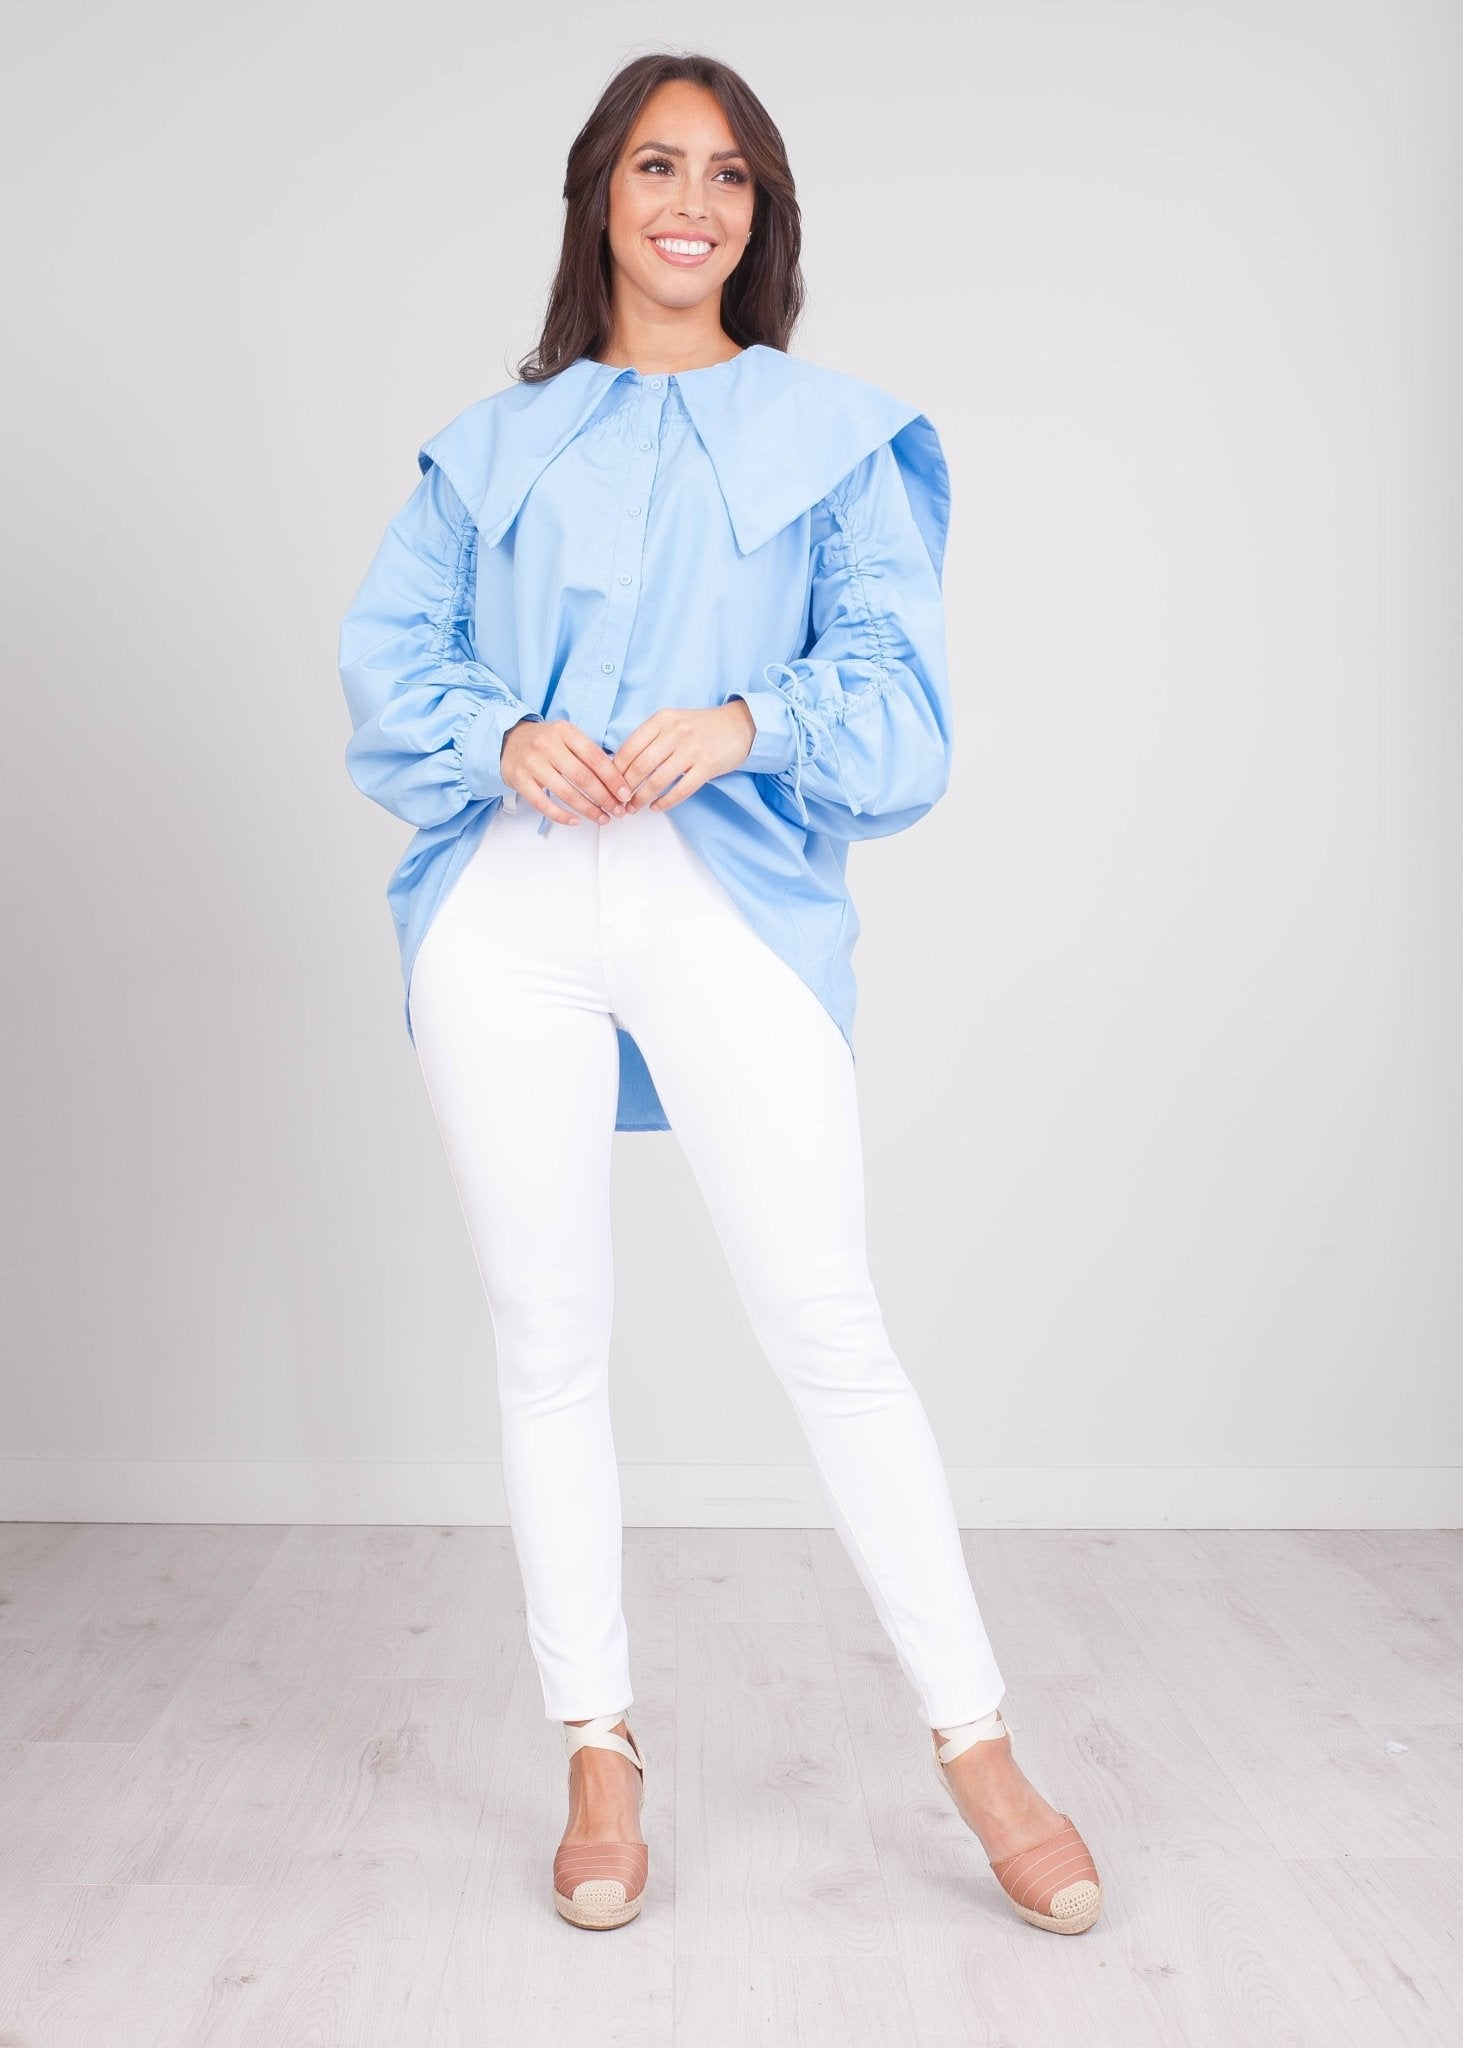 FiFi Blue Oversized Blouse - The Walk in Wardrobe